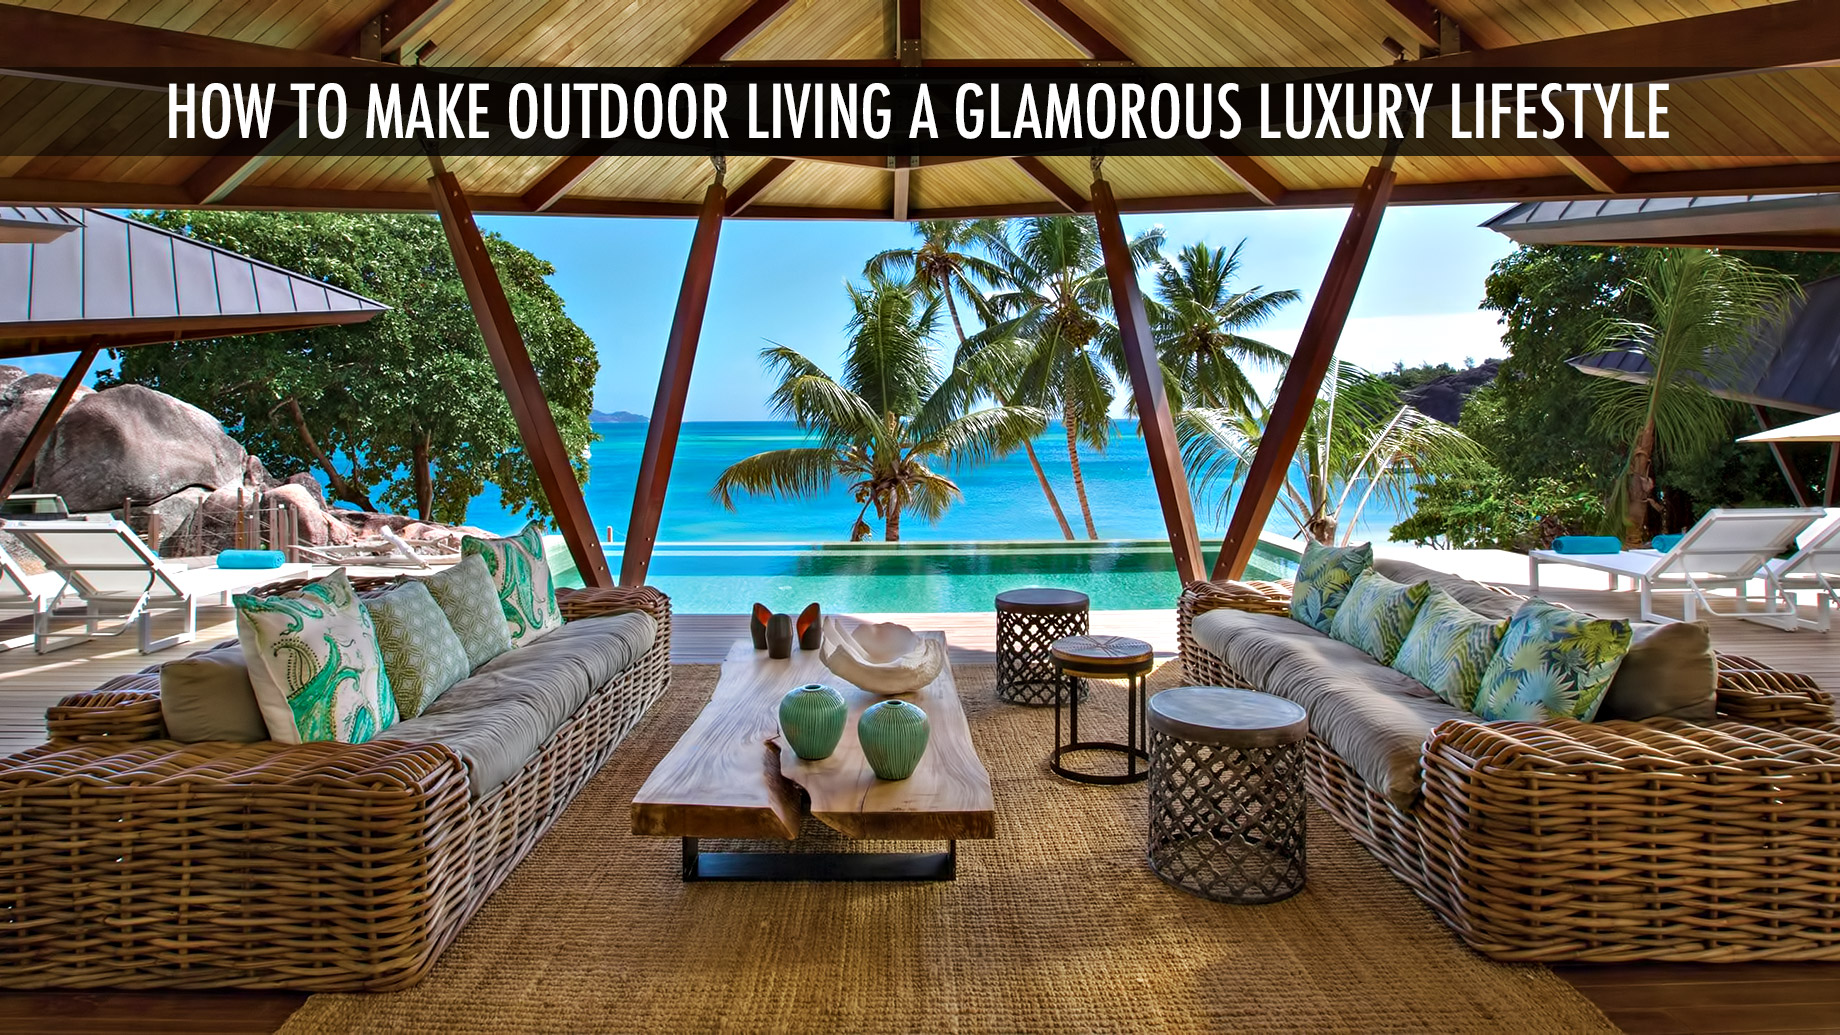 How to Make Outdoor Living a Glamorous Luxury Lifestyle